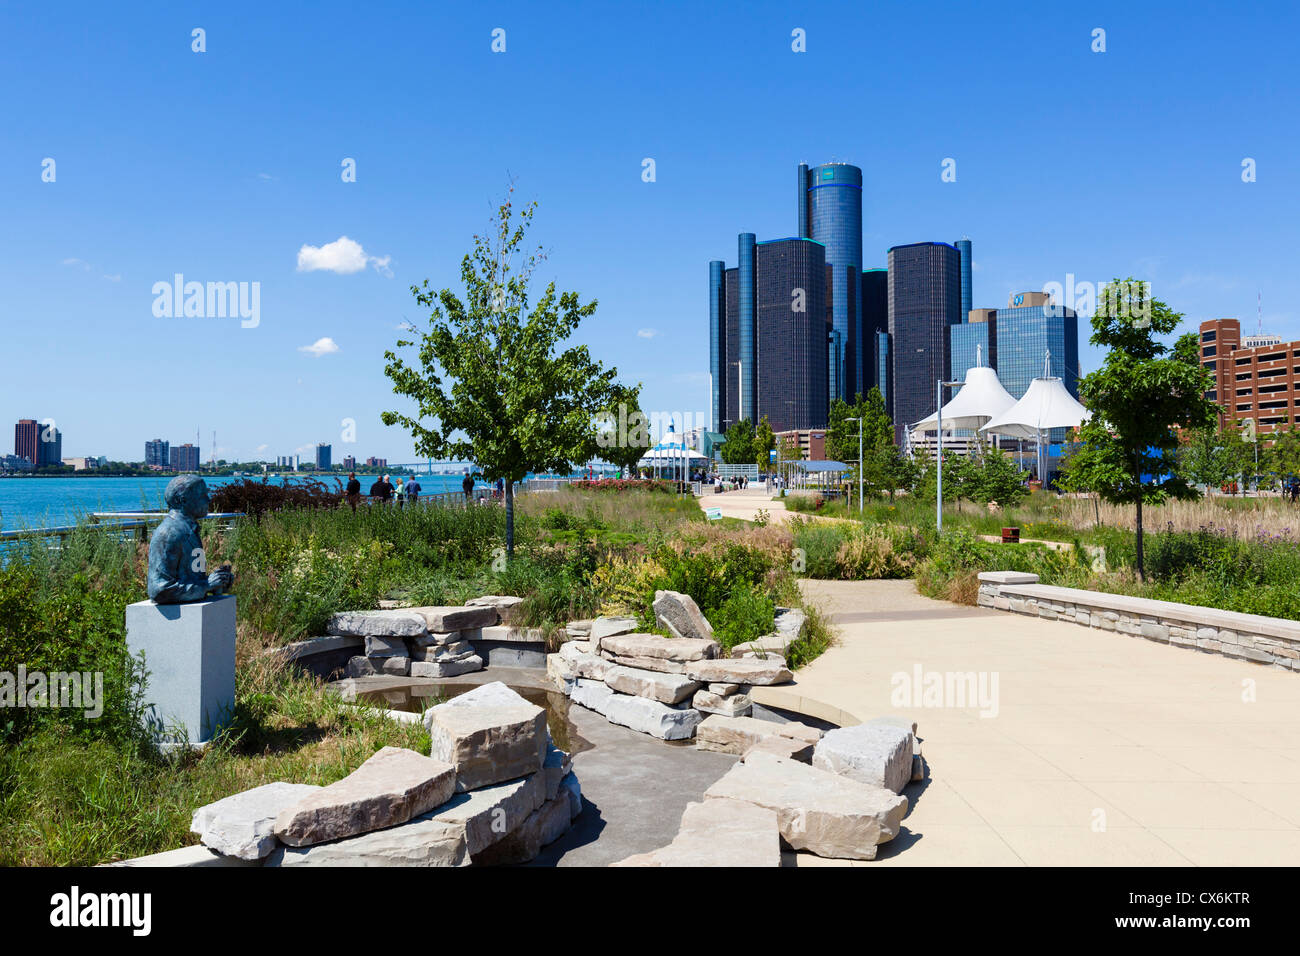 The Renaissance Center city skyline and the Detroit River viewed from Milliken State Park, Detroit, Michigan, USA - Stock Image